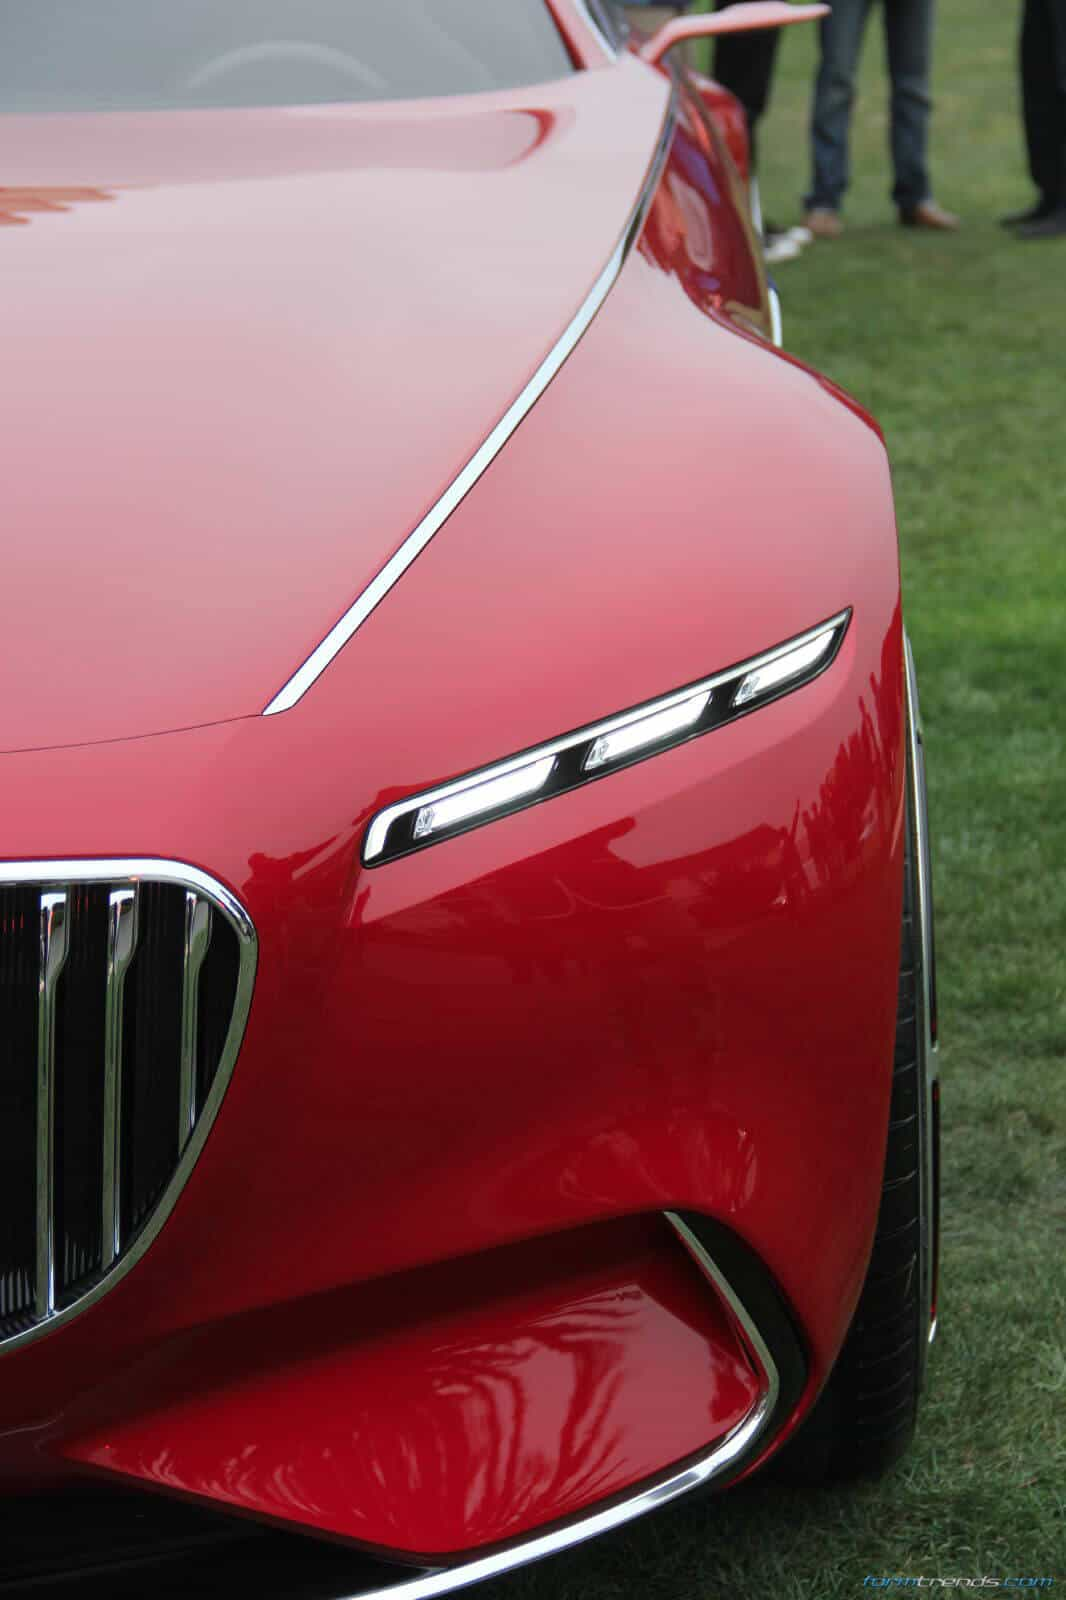 Coupe Series black and pink bmw Vision Mercedes-Maybach 6 Car Explained by Design VP